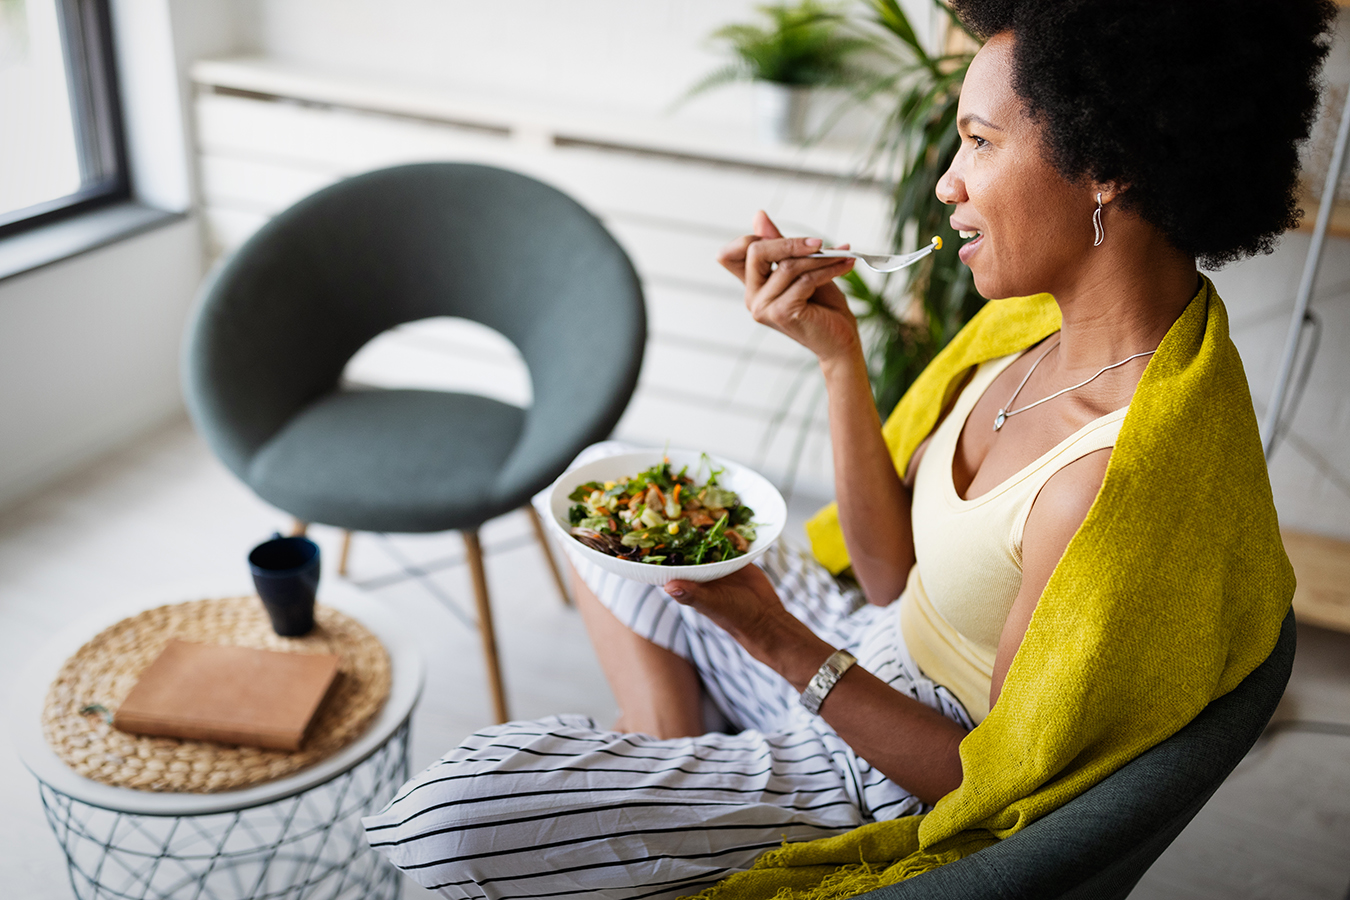 Image of a woman eating a salad